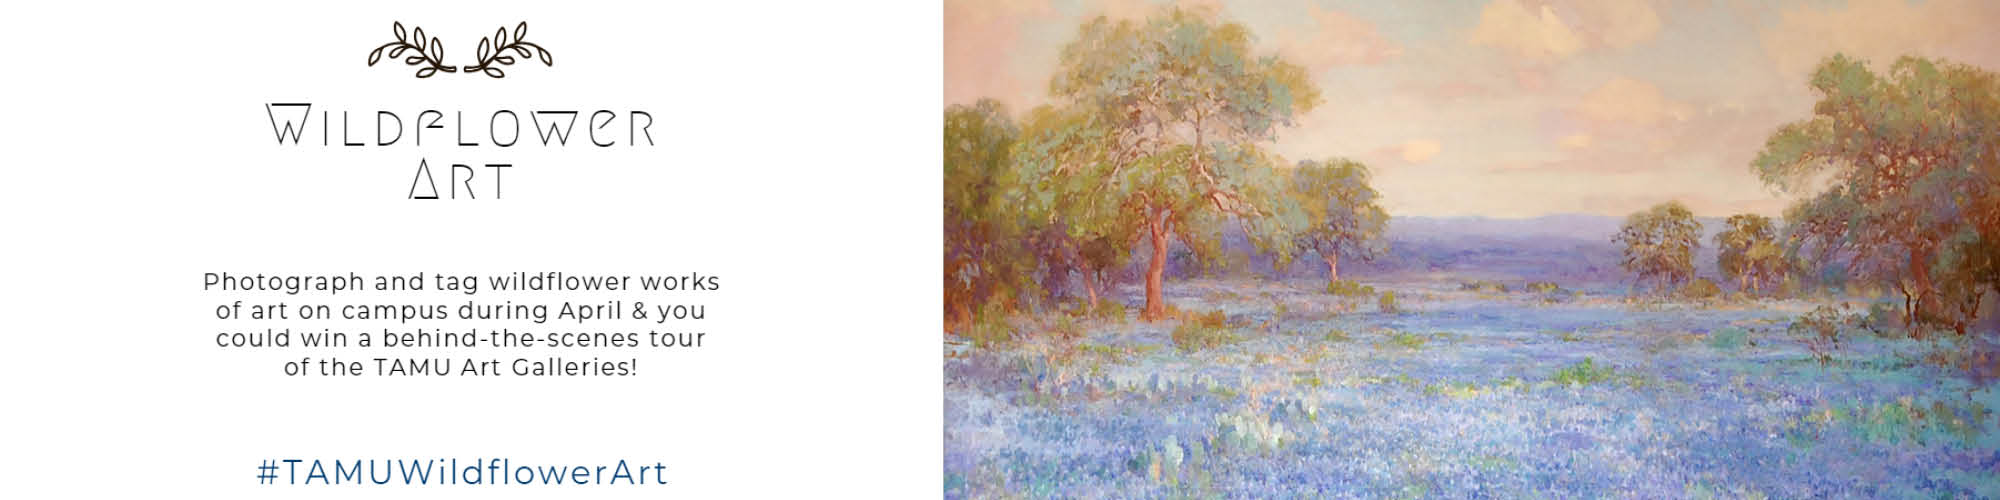 Painting of bluebonnets, cacti, and trees in a field